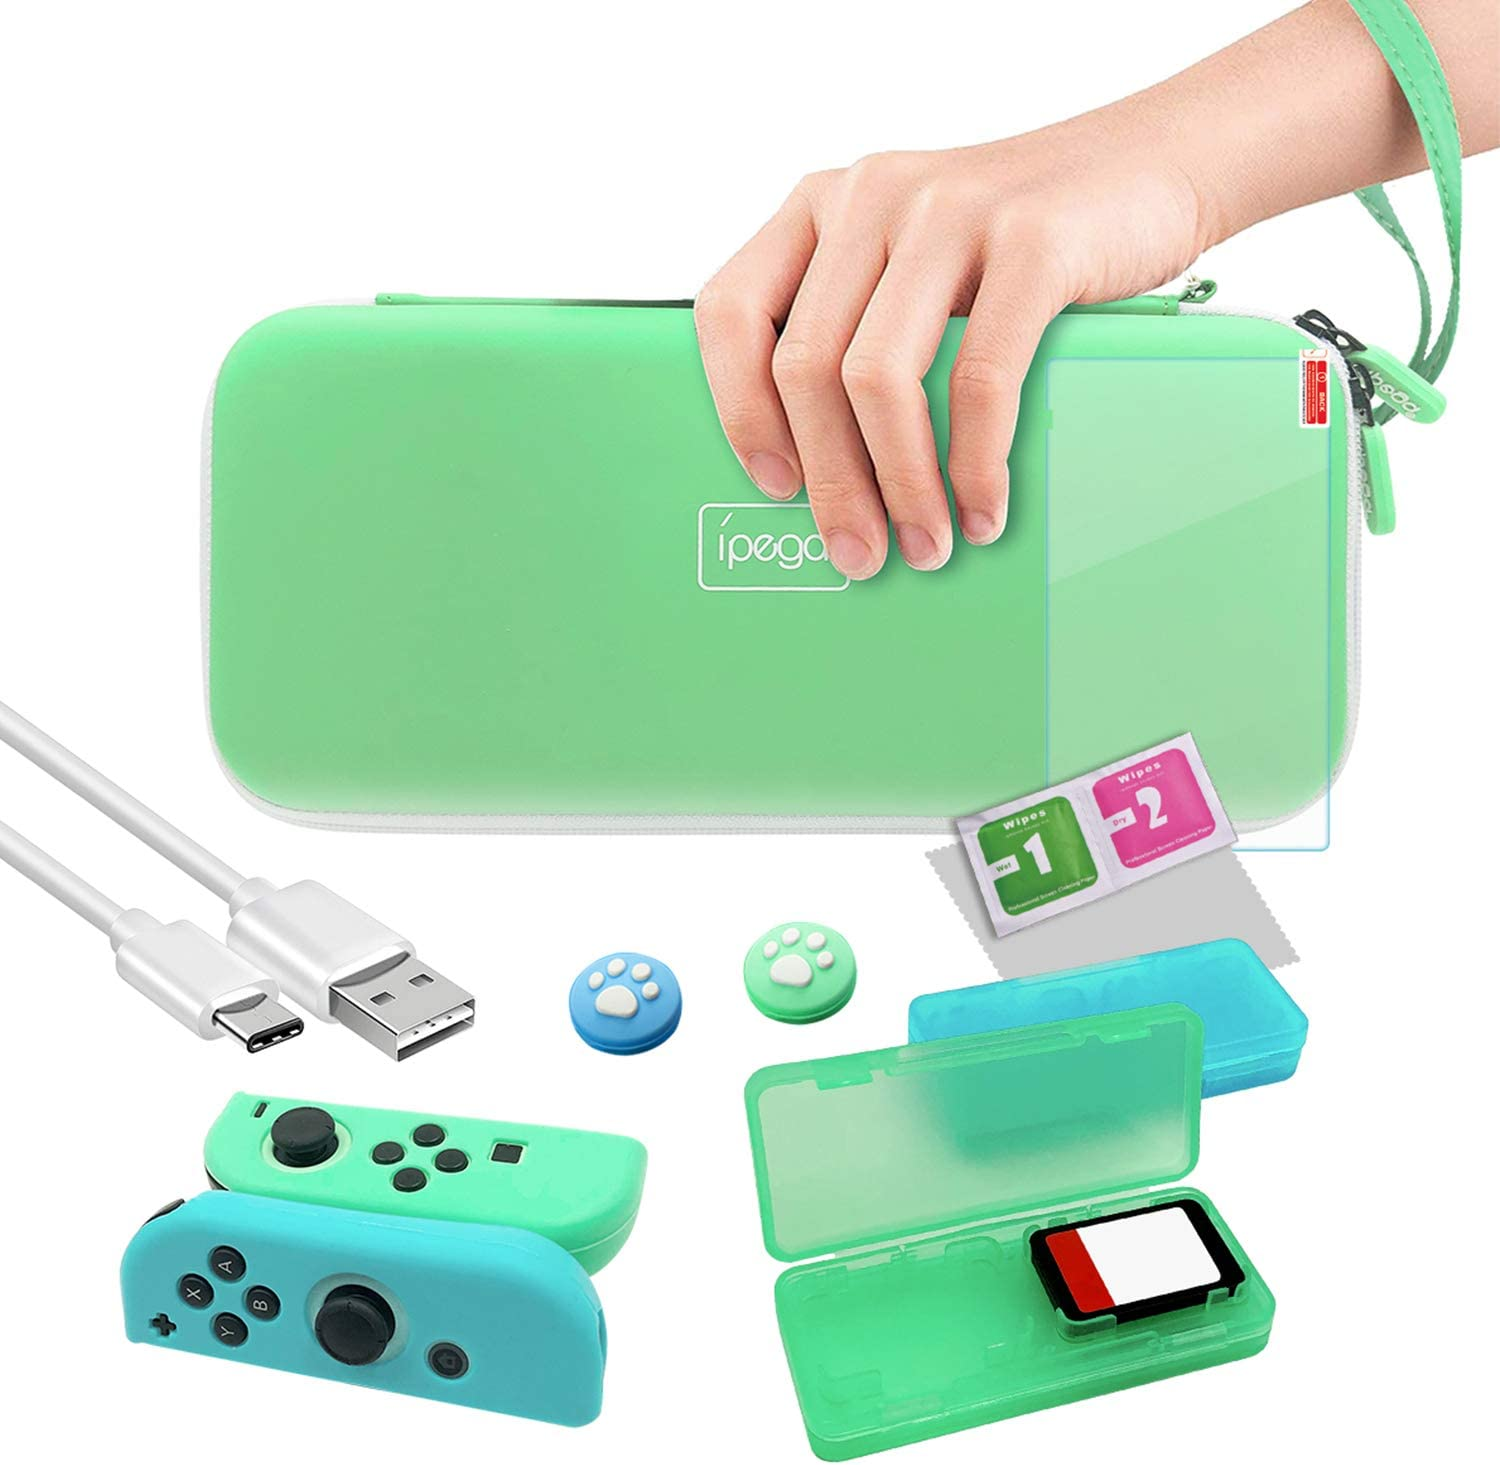 Accessories Bundle for Nintendo Switch, 12 in 1 Accessories Kit with Carrying Case, Screen Protector, Silicone Case for Joycon, Game card Case & Type-C Cable for Nintendo Switch Pro Controller